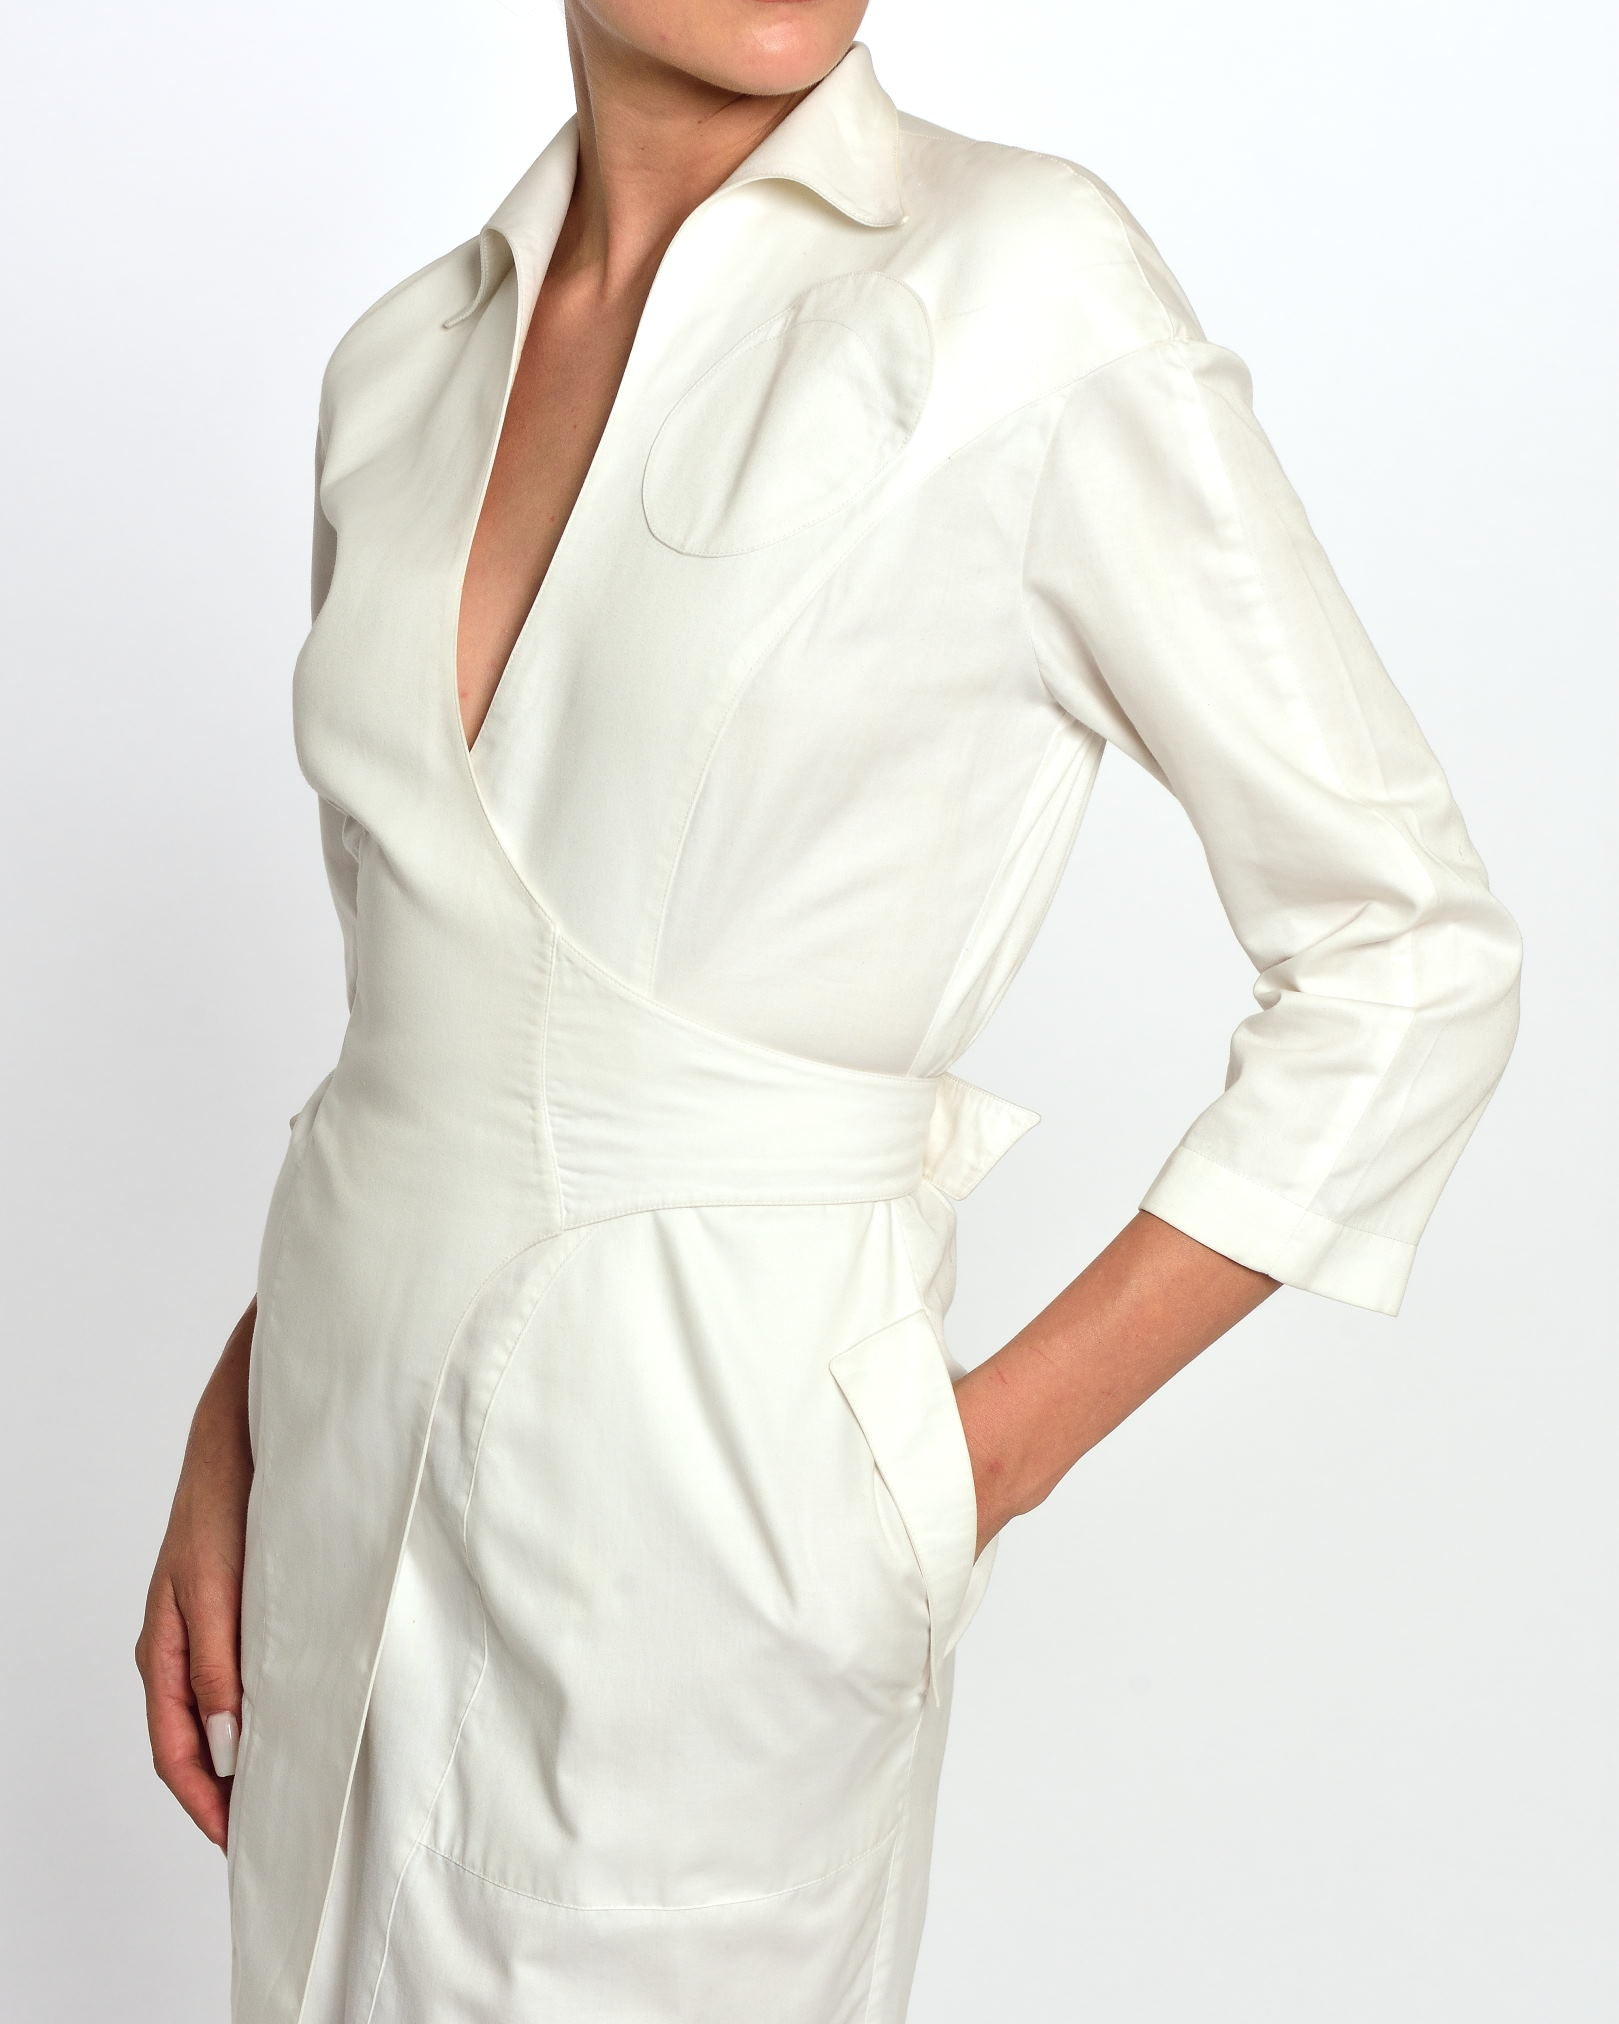 1980s White Dress - Trench Coat